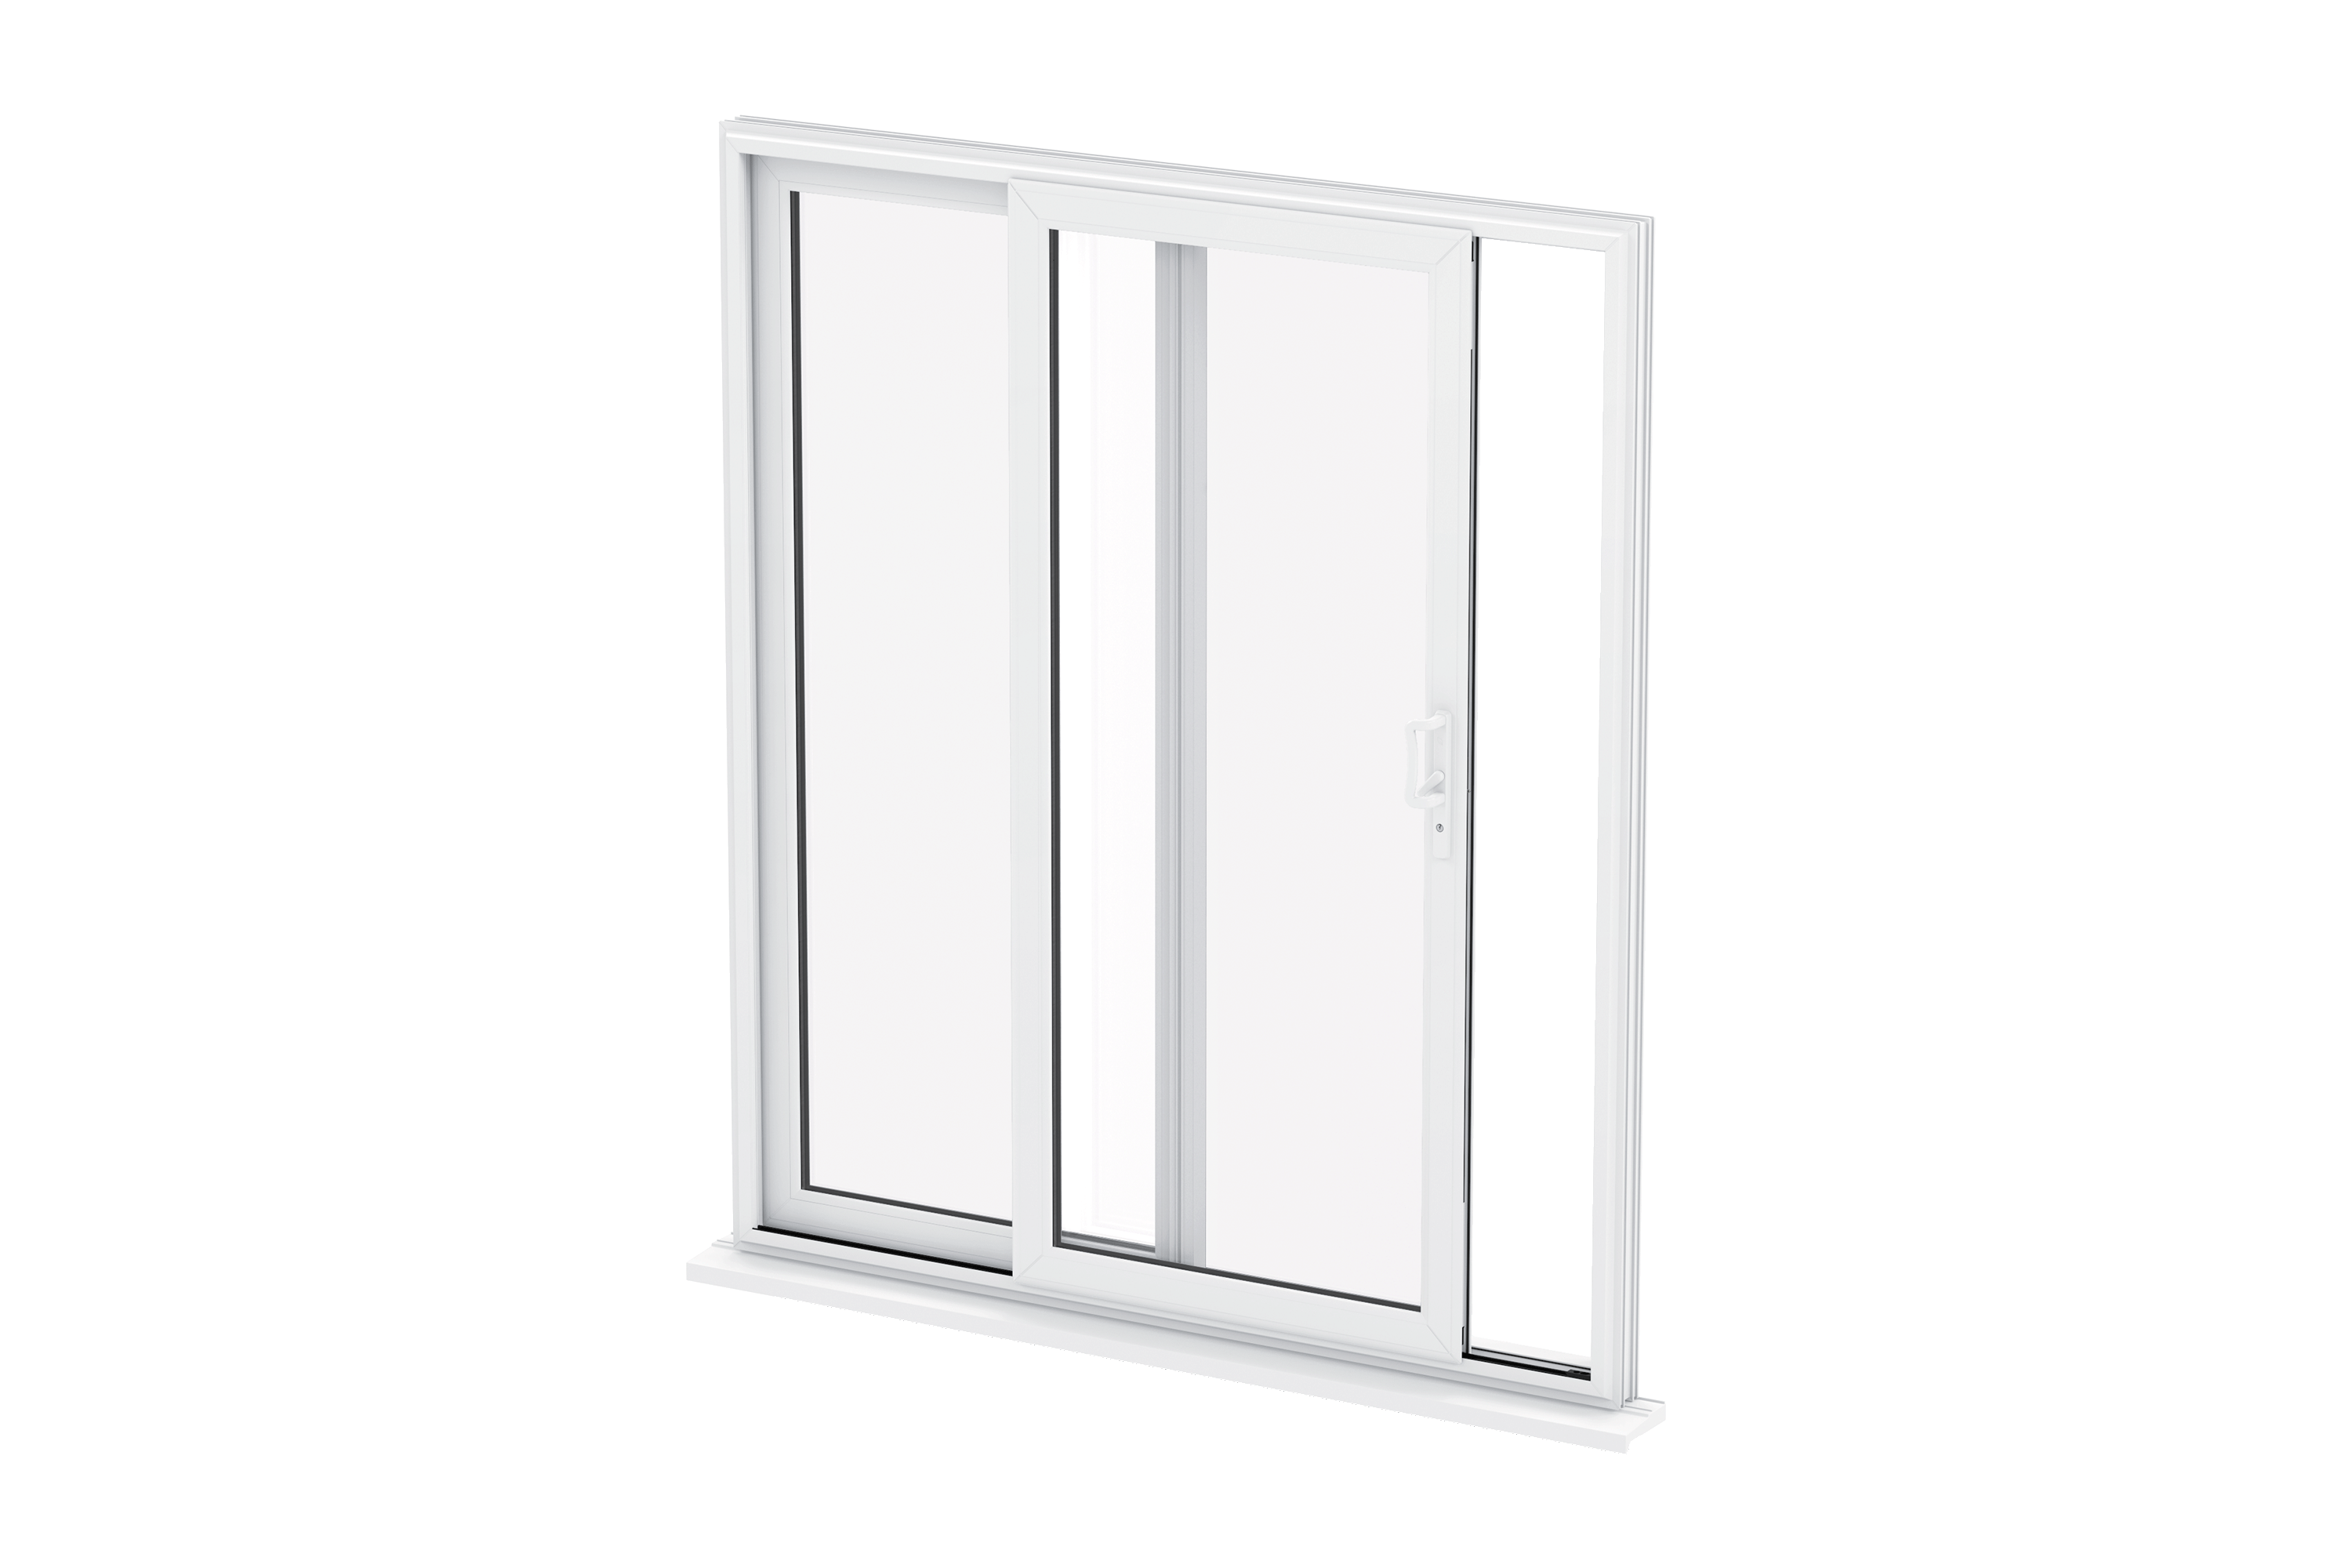 Upvc patio doors pangbourne double glazed doors reading for Upvc balcony doors